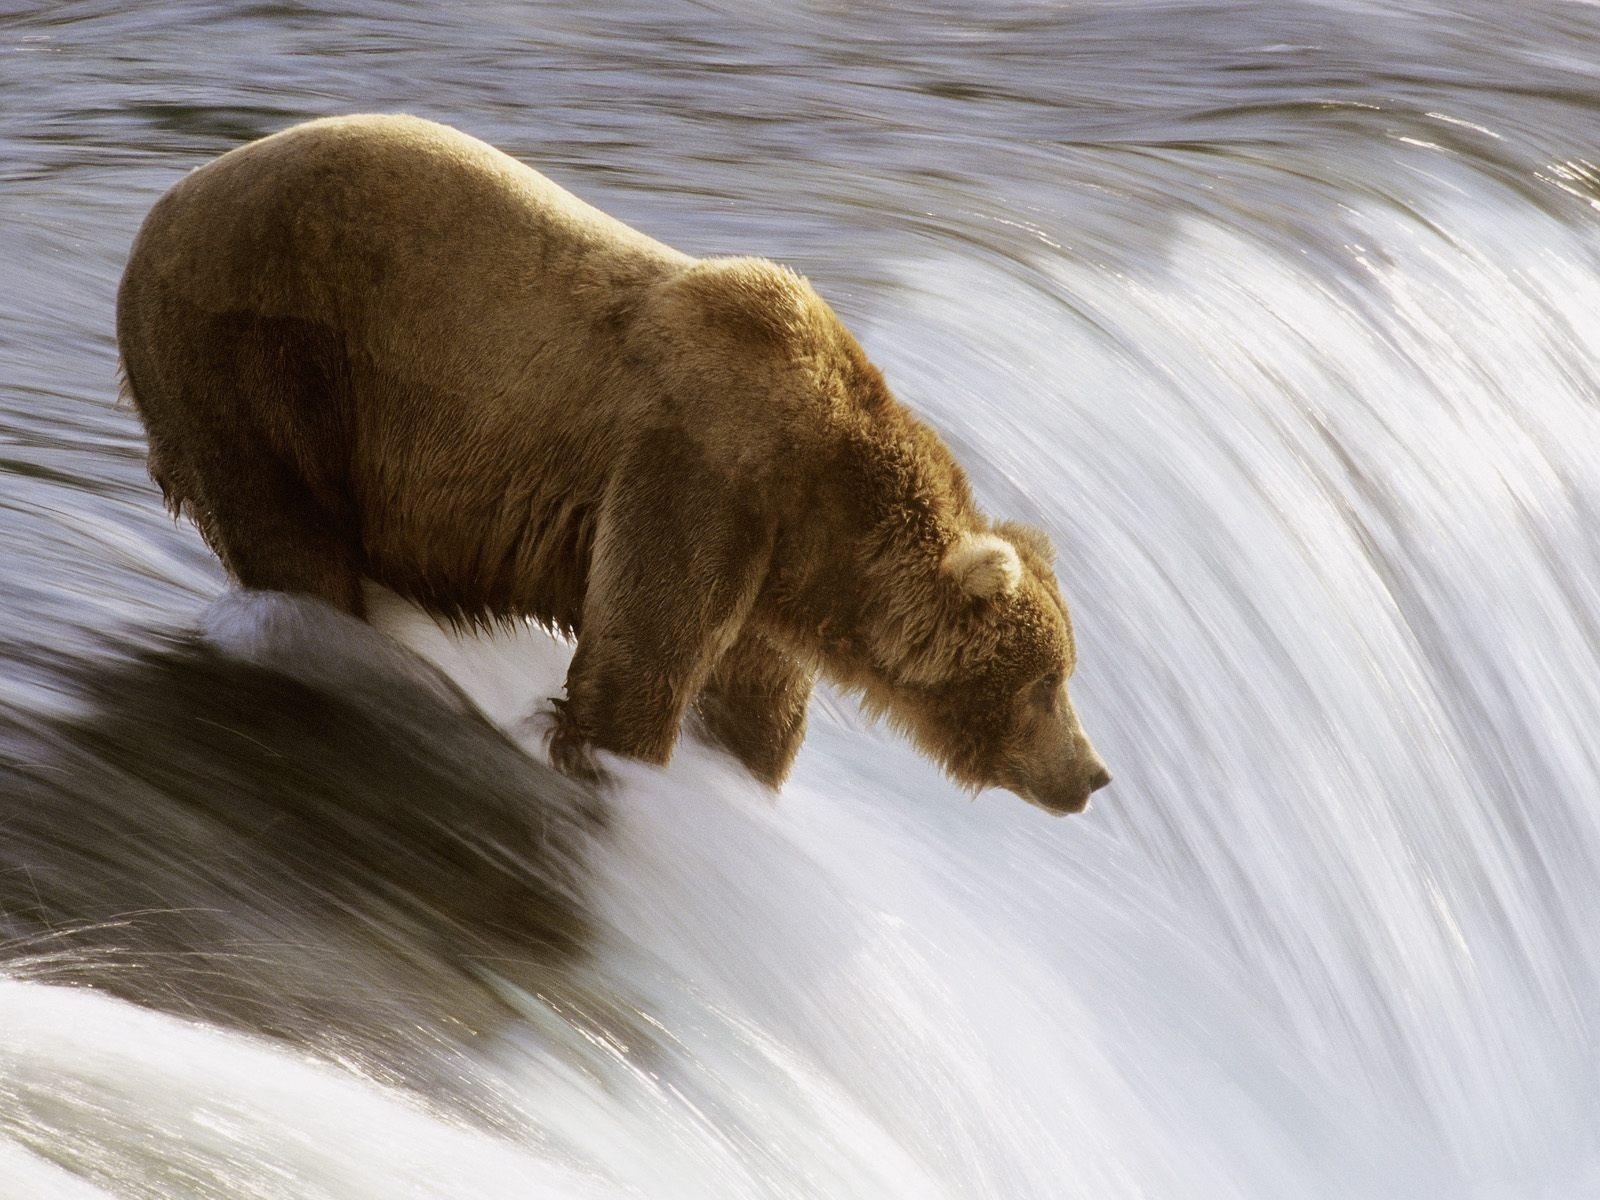 Brown bears' hunting techniques have been studied extensively. Handed down from their mother, brown bears adapt their fishing methods depending on yield ratios and salmon abundance in exacting fashion. Patience and context prove invaluable and determine the difference between those who thrive and those who are relegated to surviving off of the scraps down river.